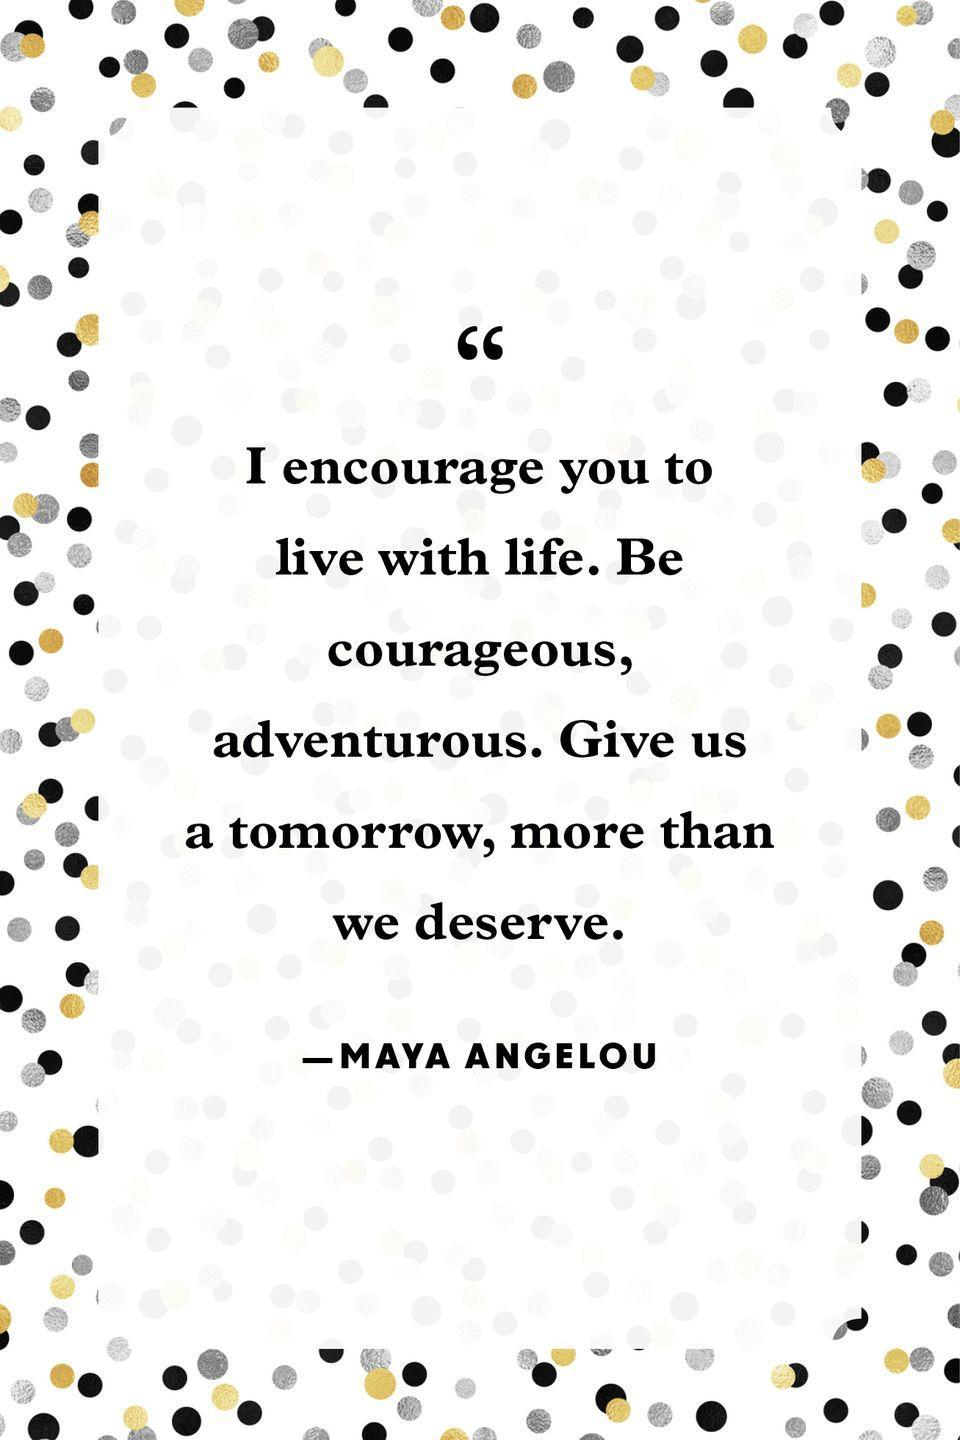 """<p>""""I encourage you to live with life. Be courageous, adventurous. Give us a tomorrow, more than we deserve.""""</p>"""